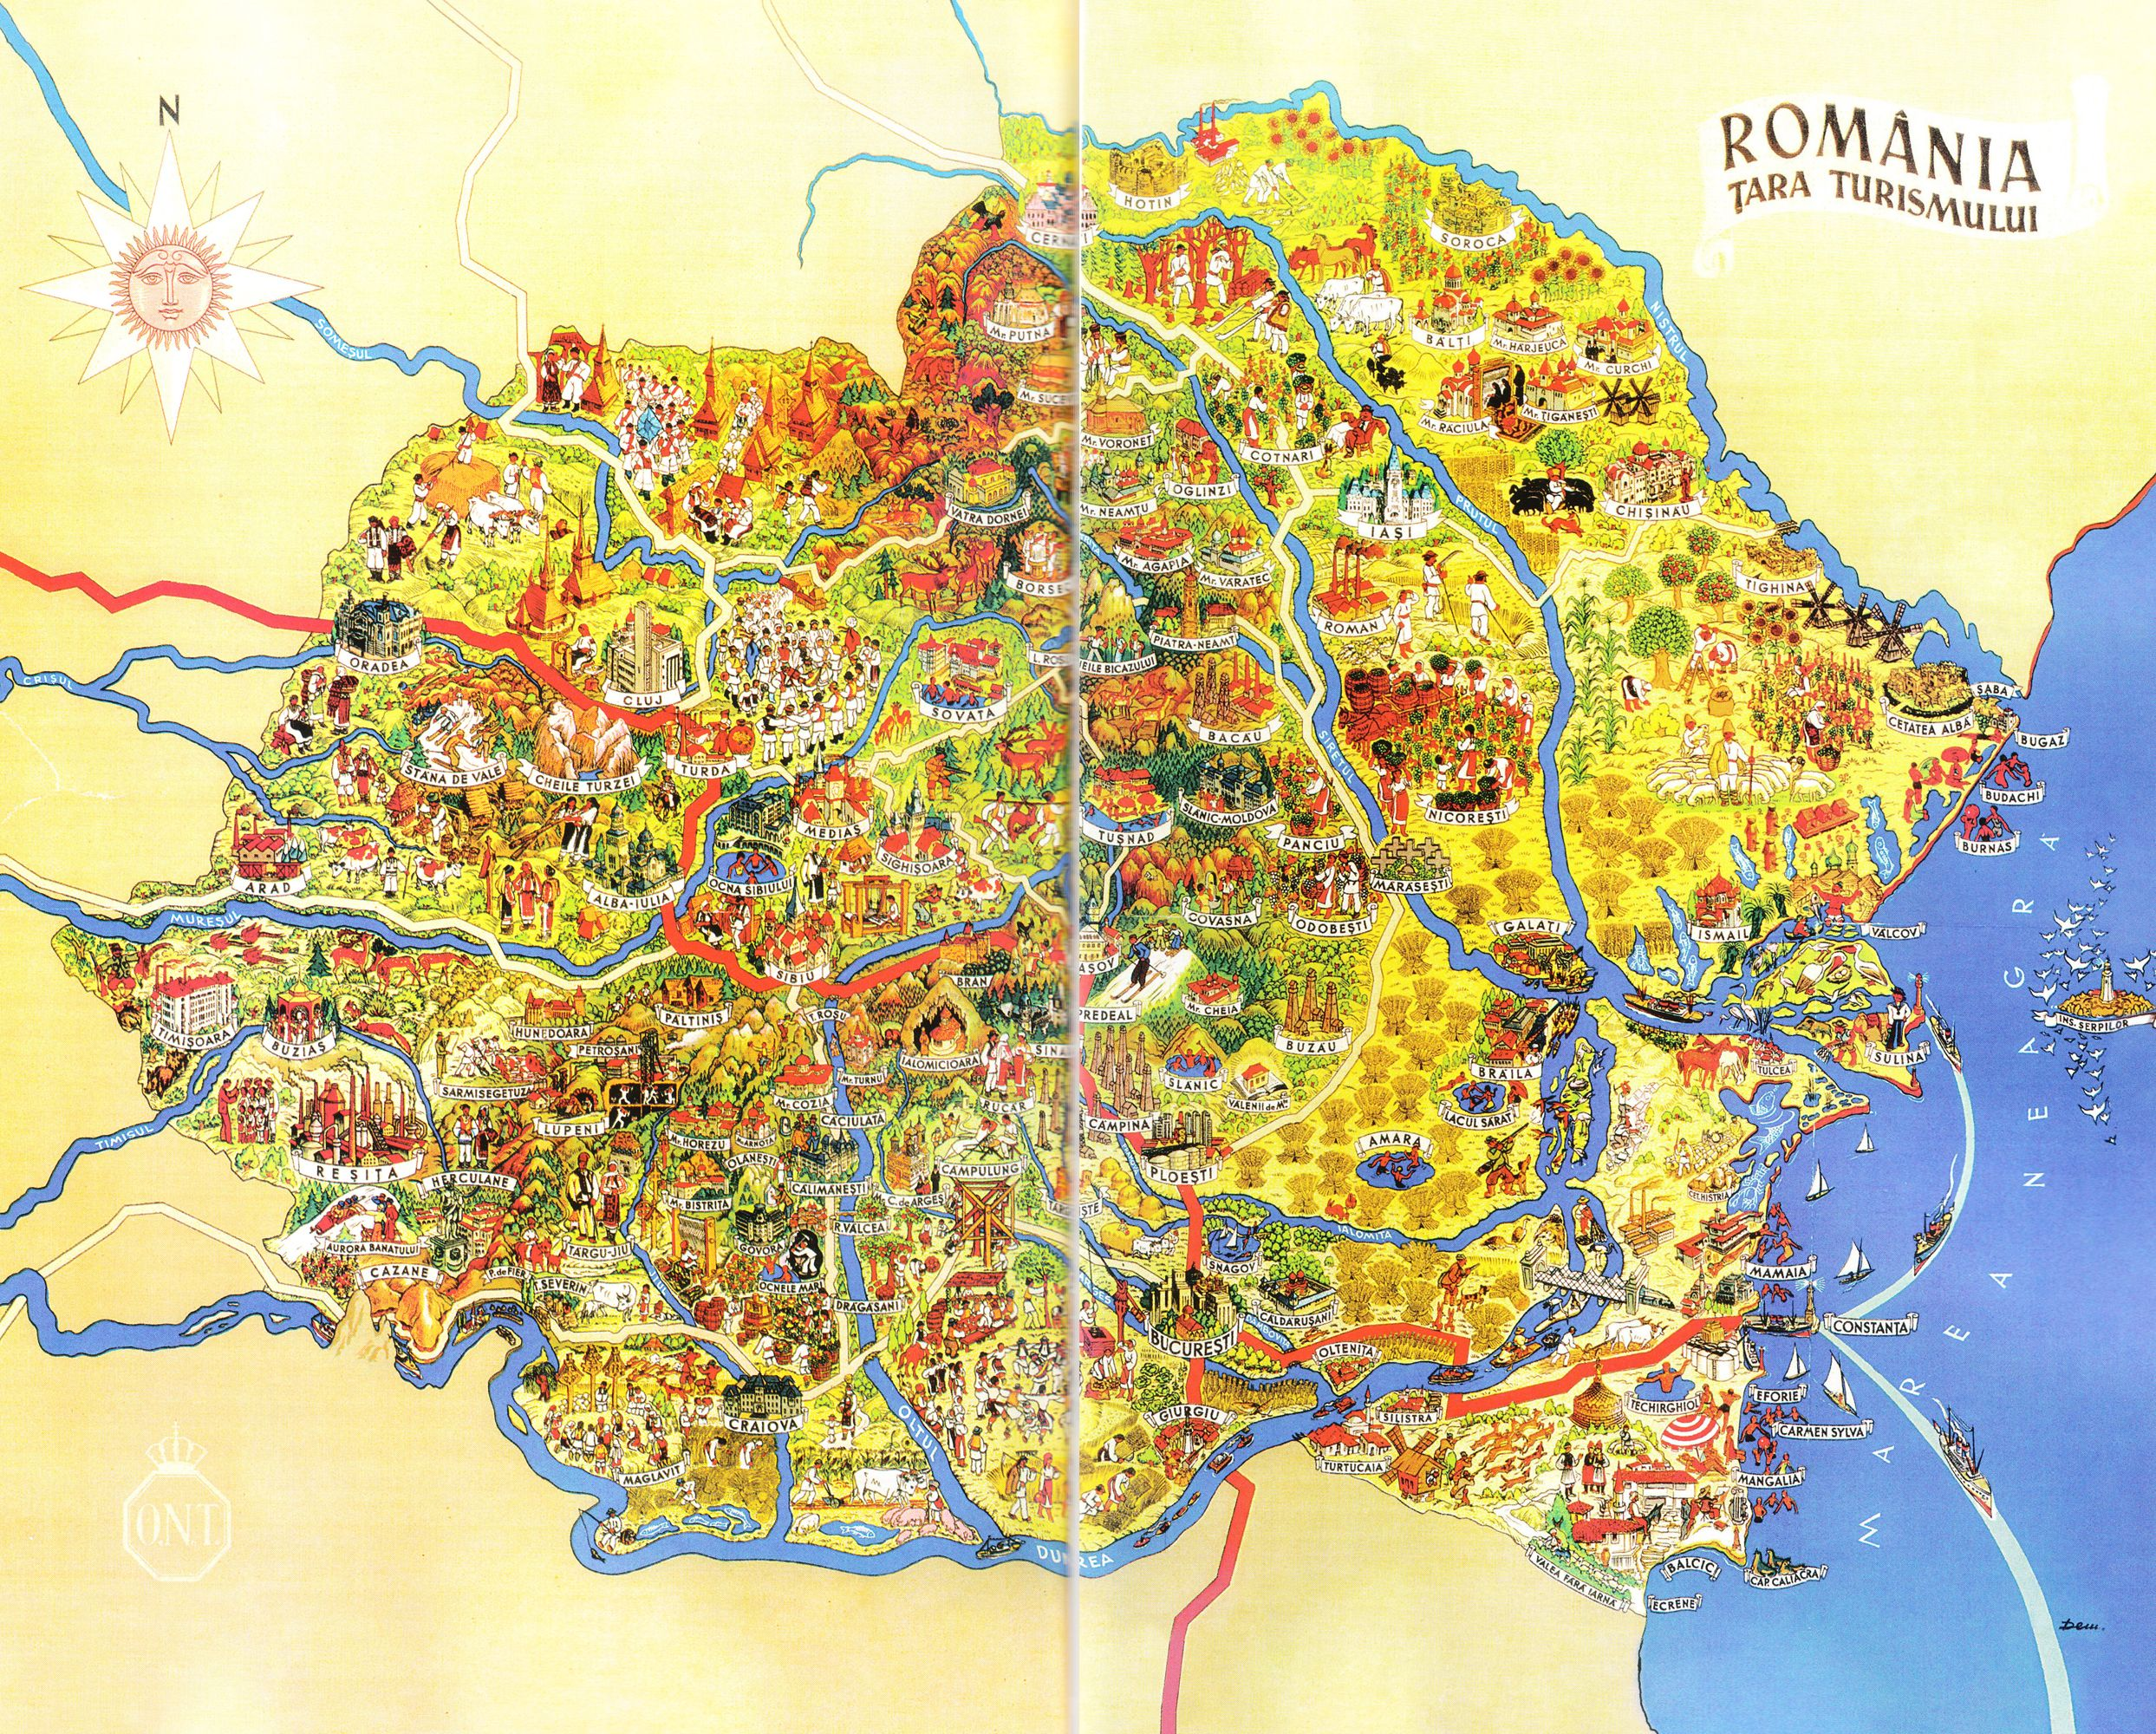 Romania Cool Map By Zaigwast On Deviantart Cartografia